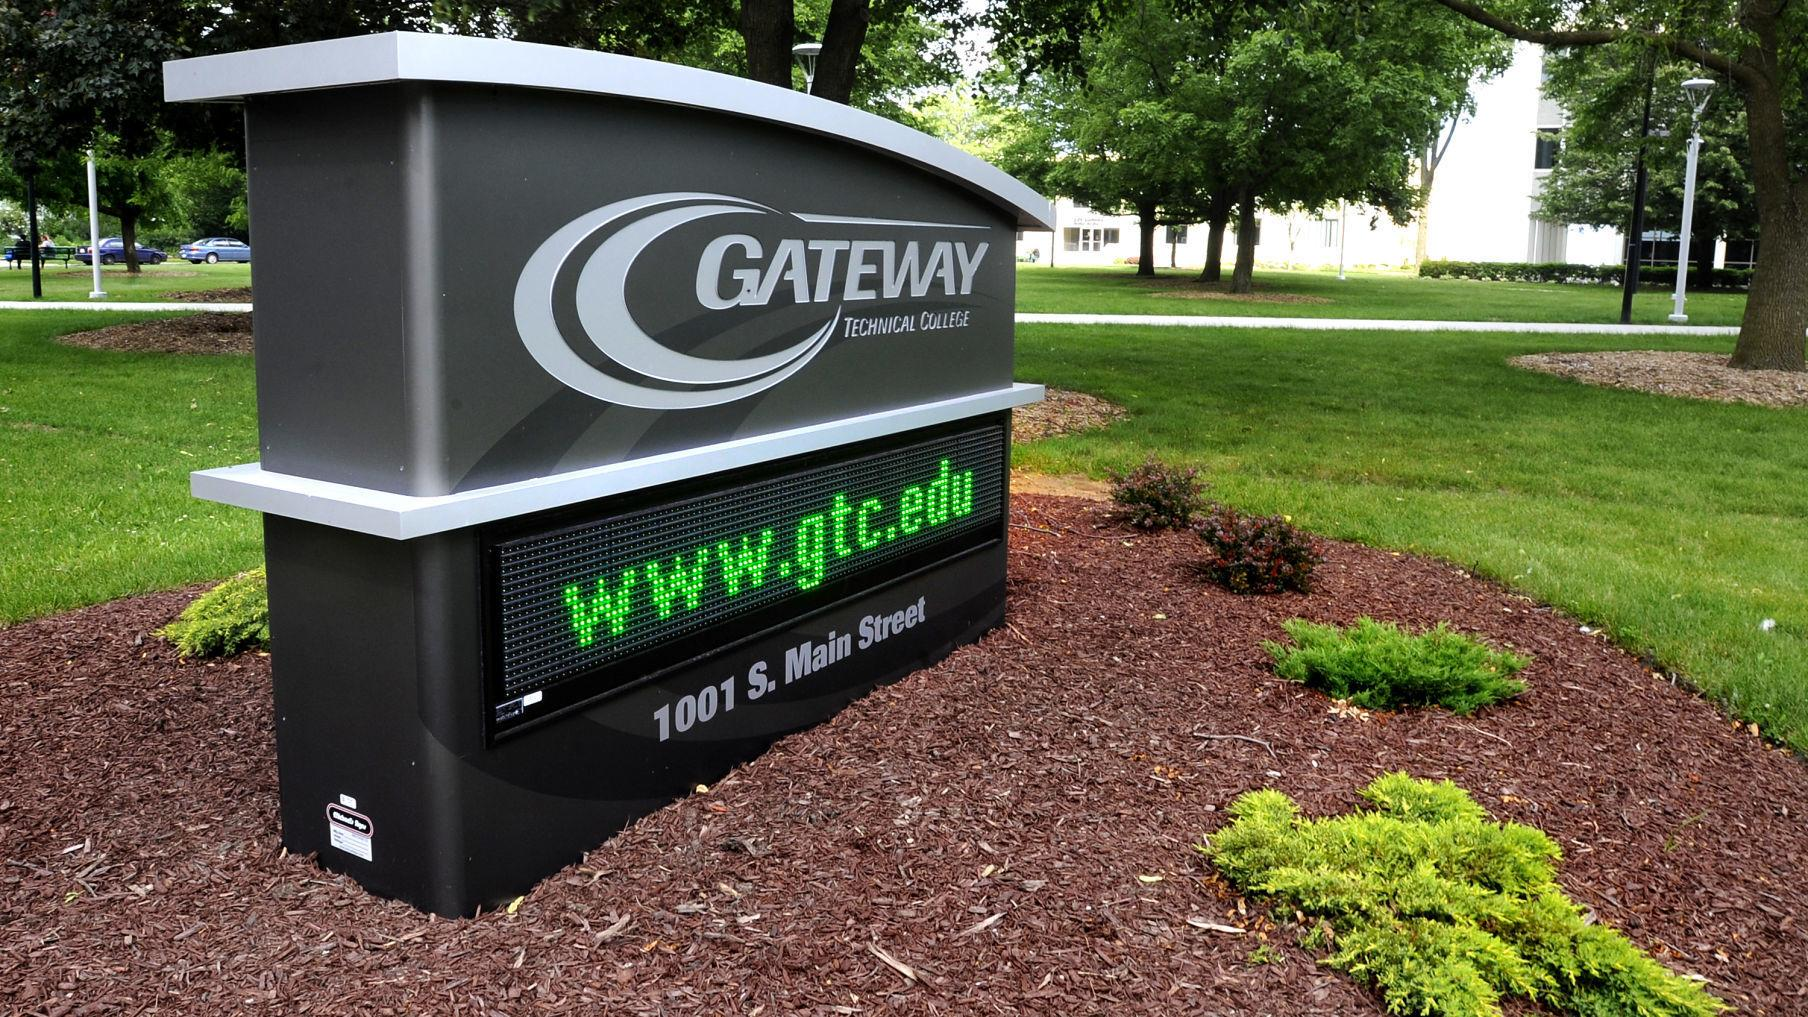 Gateway officials outline plans for new associate's degree programs, reduce 2021-22 tax levy